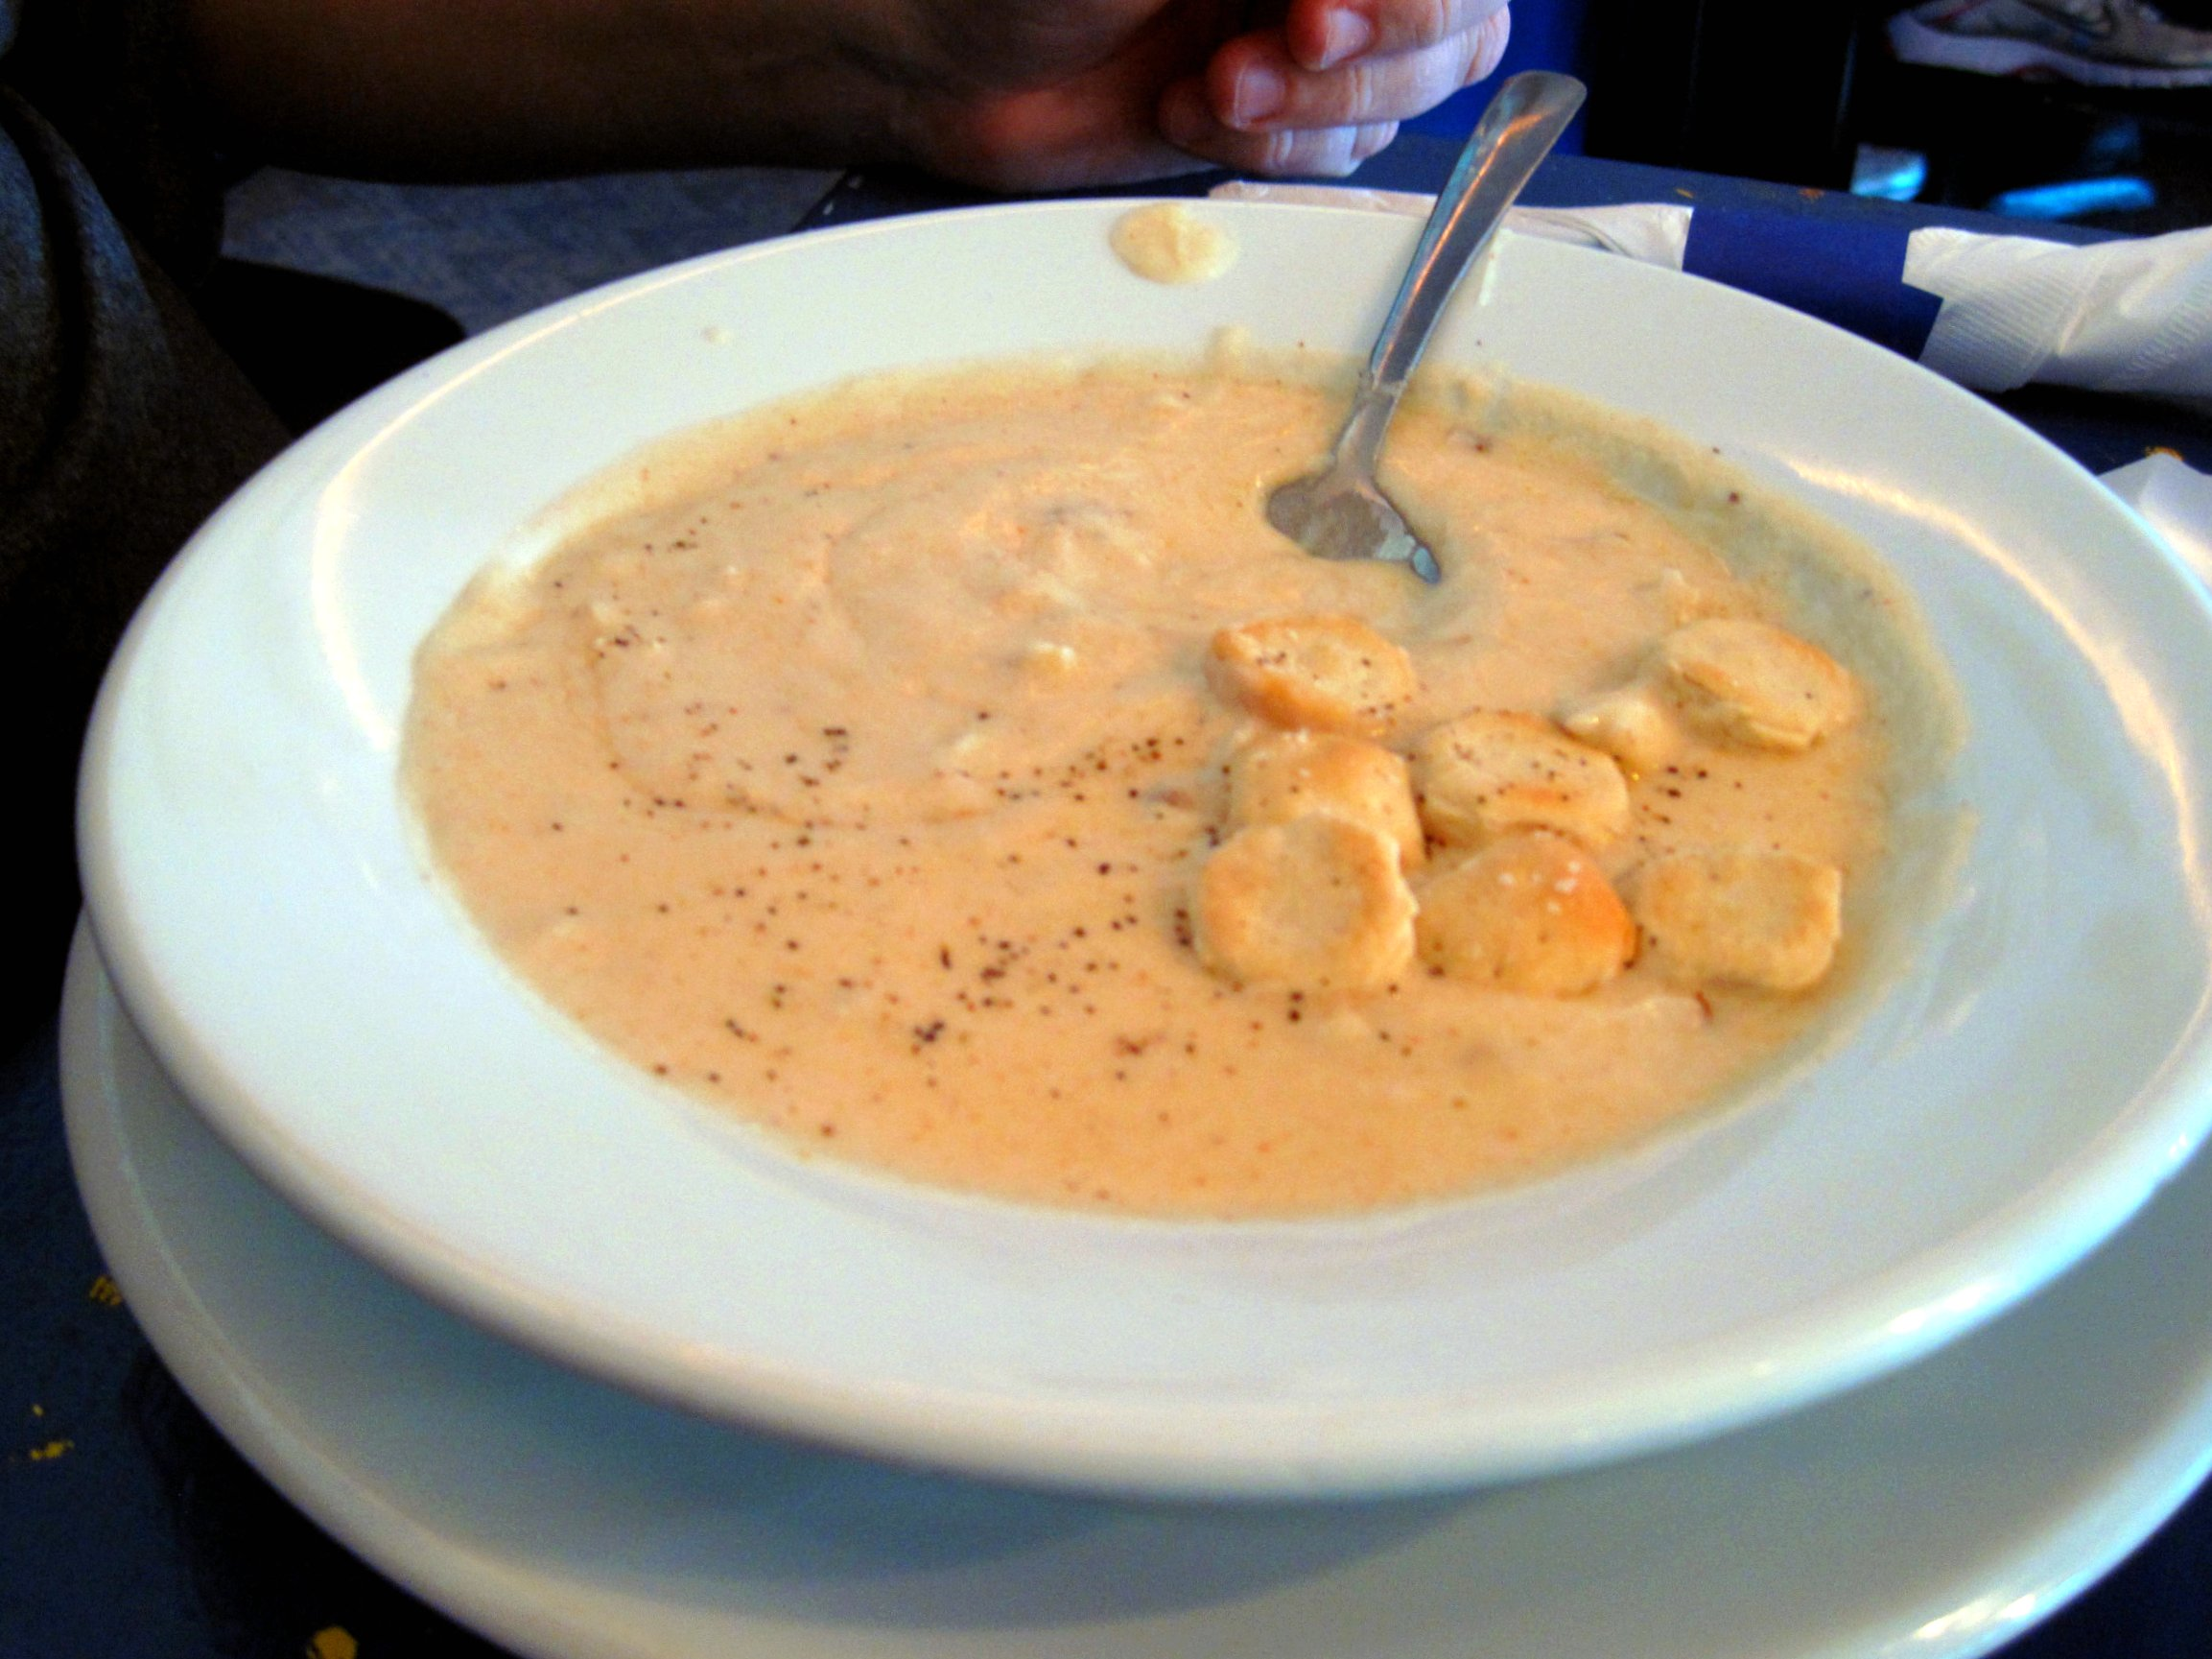 File:She-Crab Soup.jpg - Wikimedia Commons